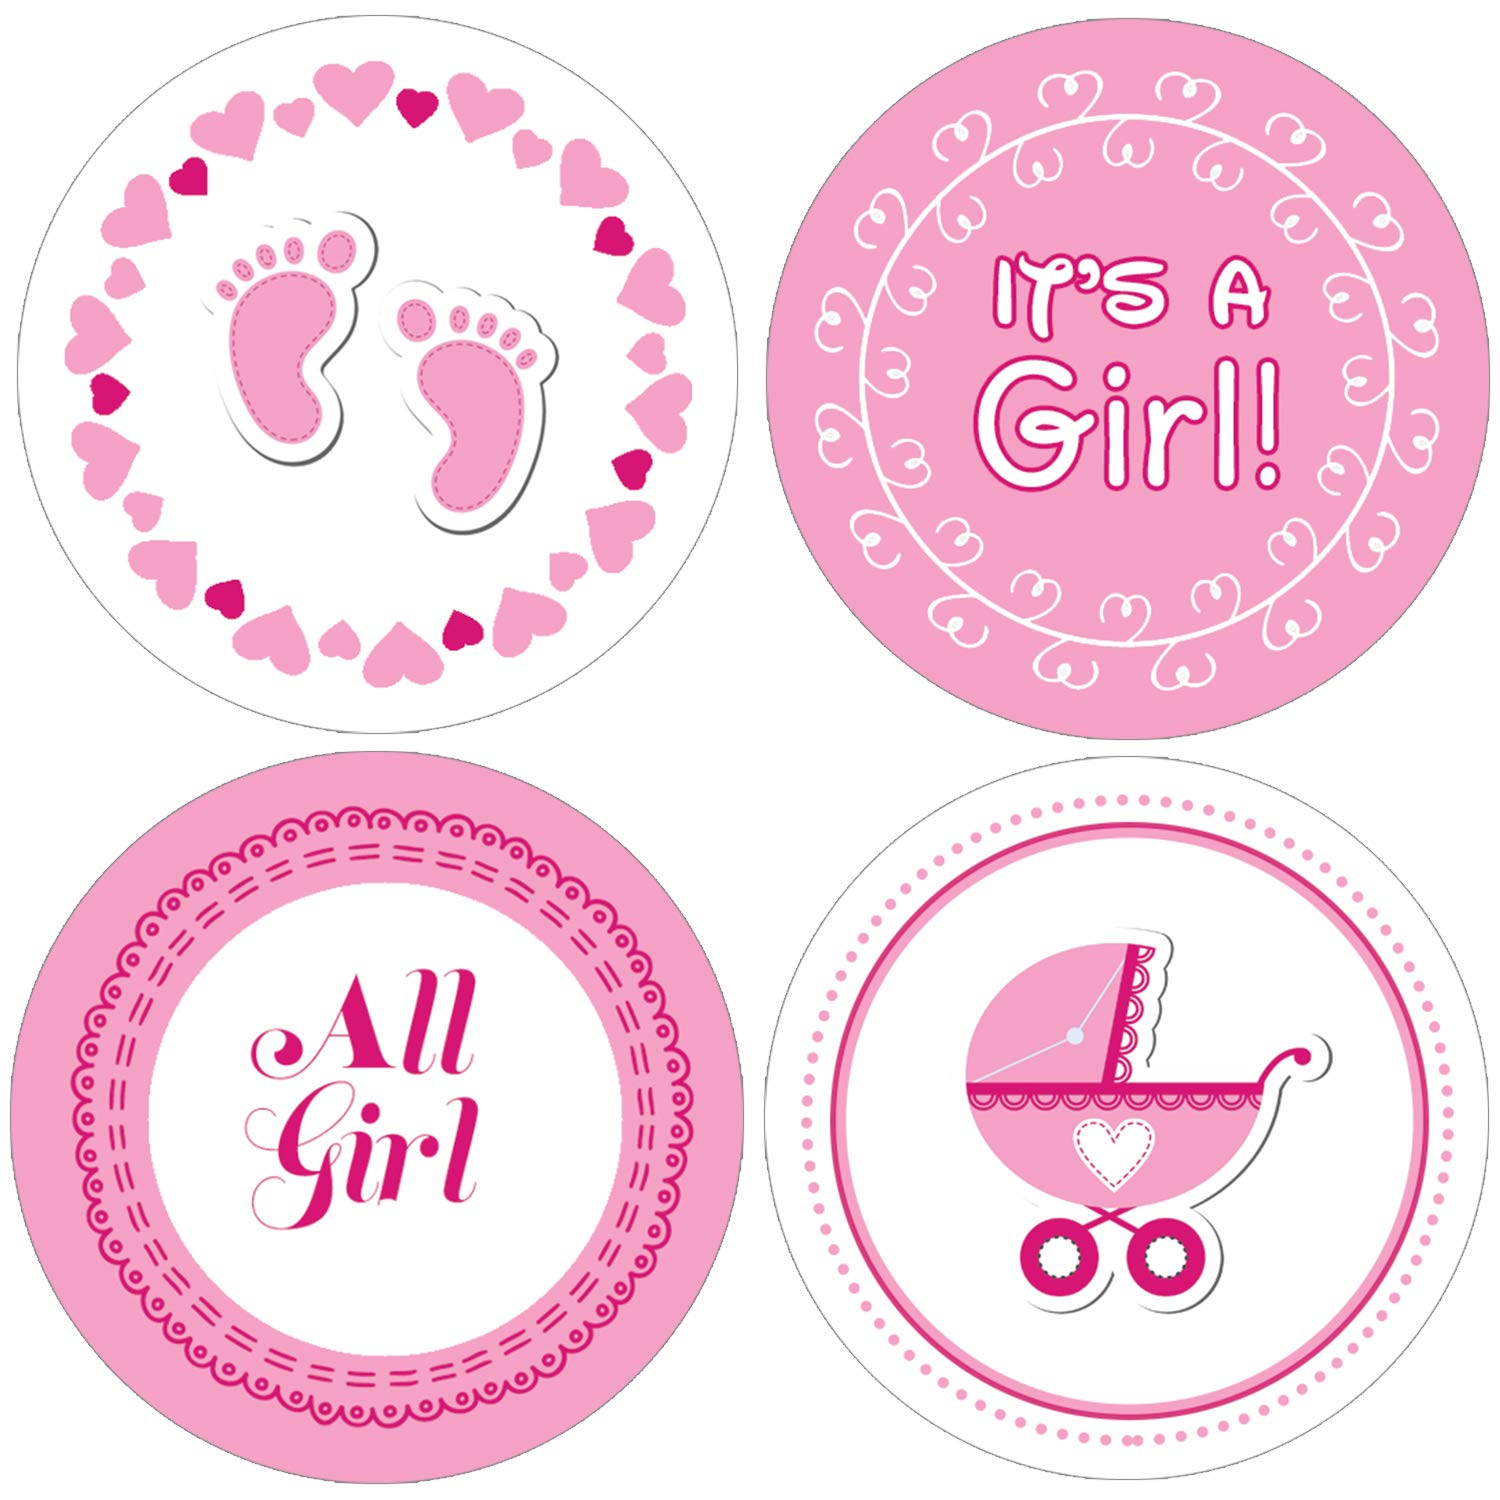 It's a Girl Baby Shower Favor Stickers.